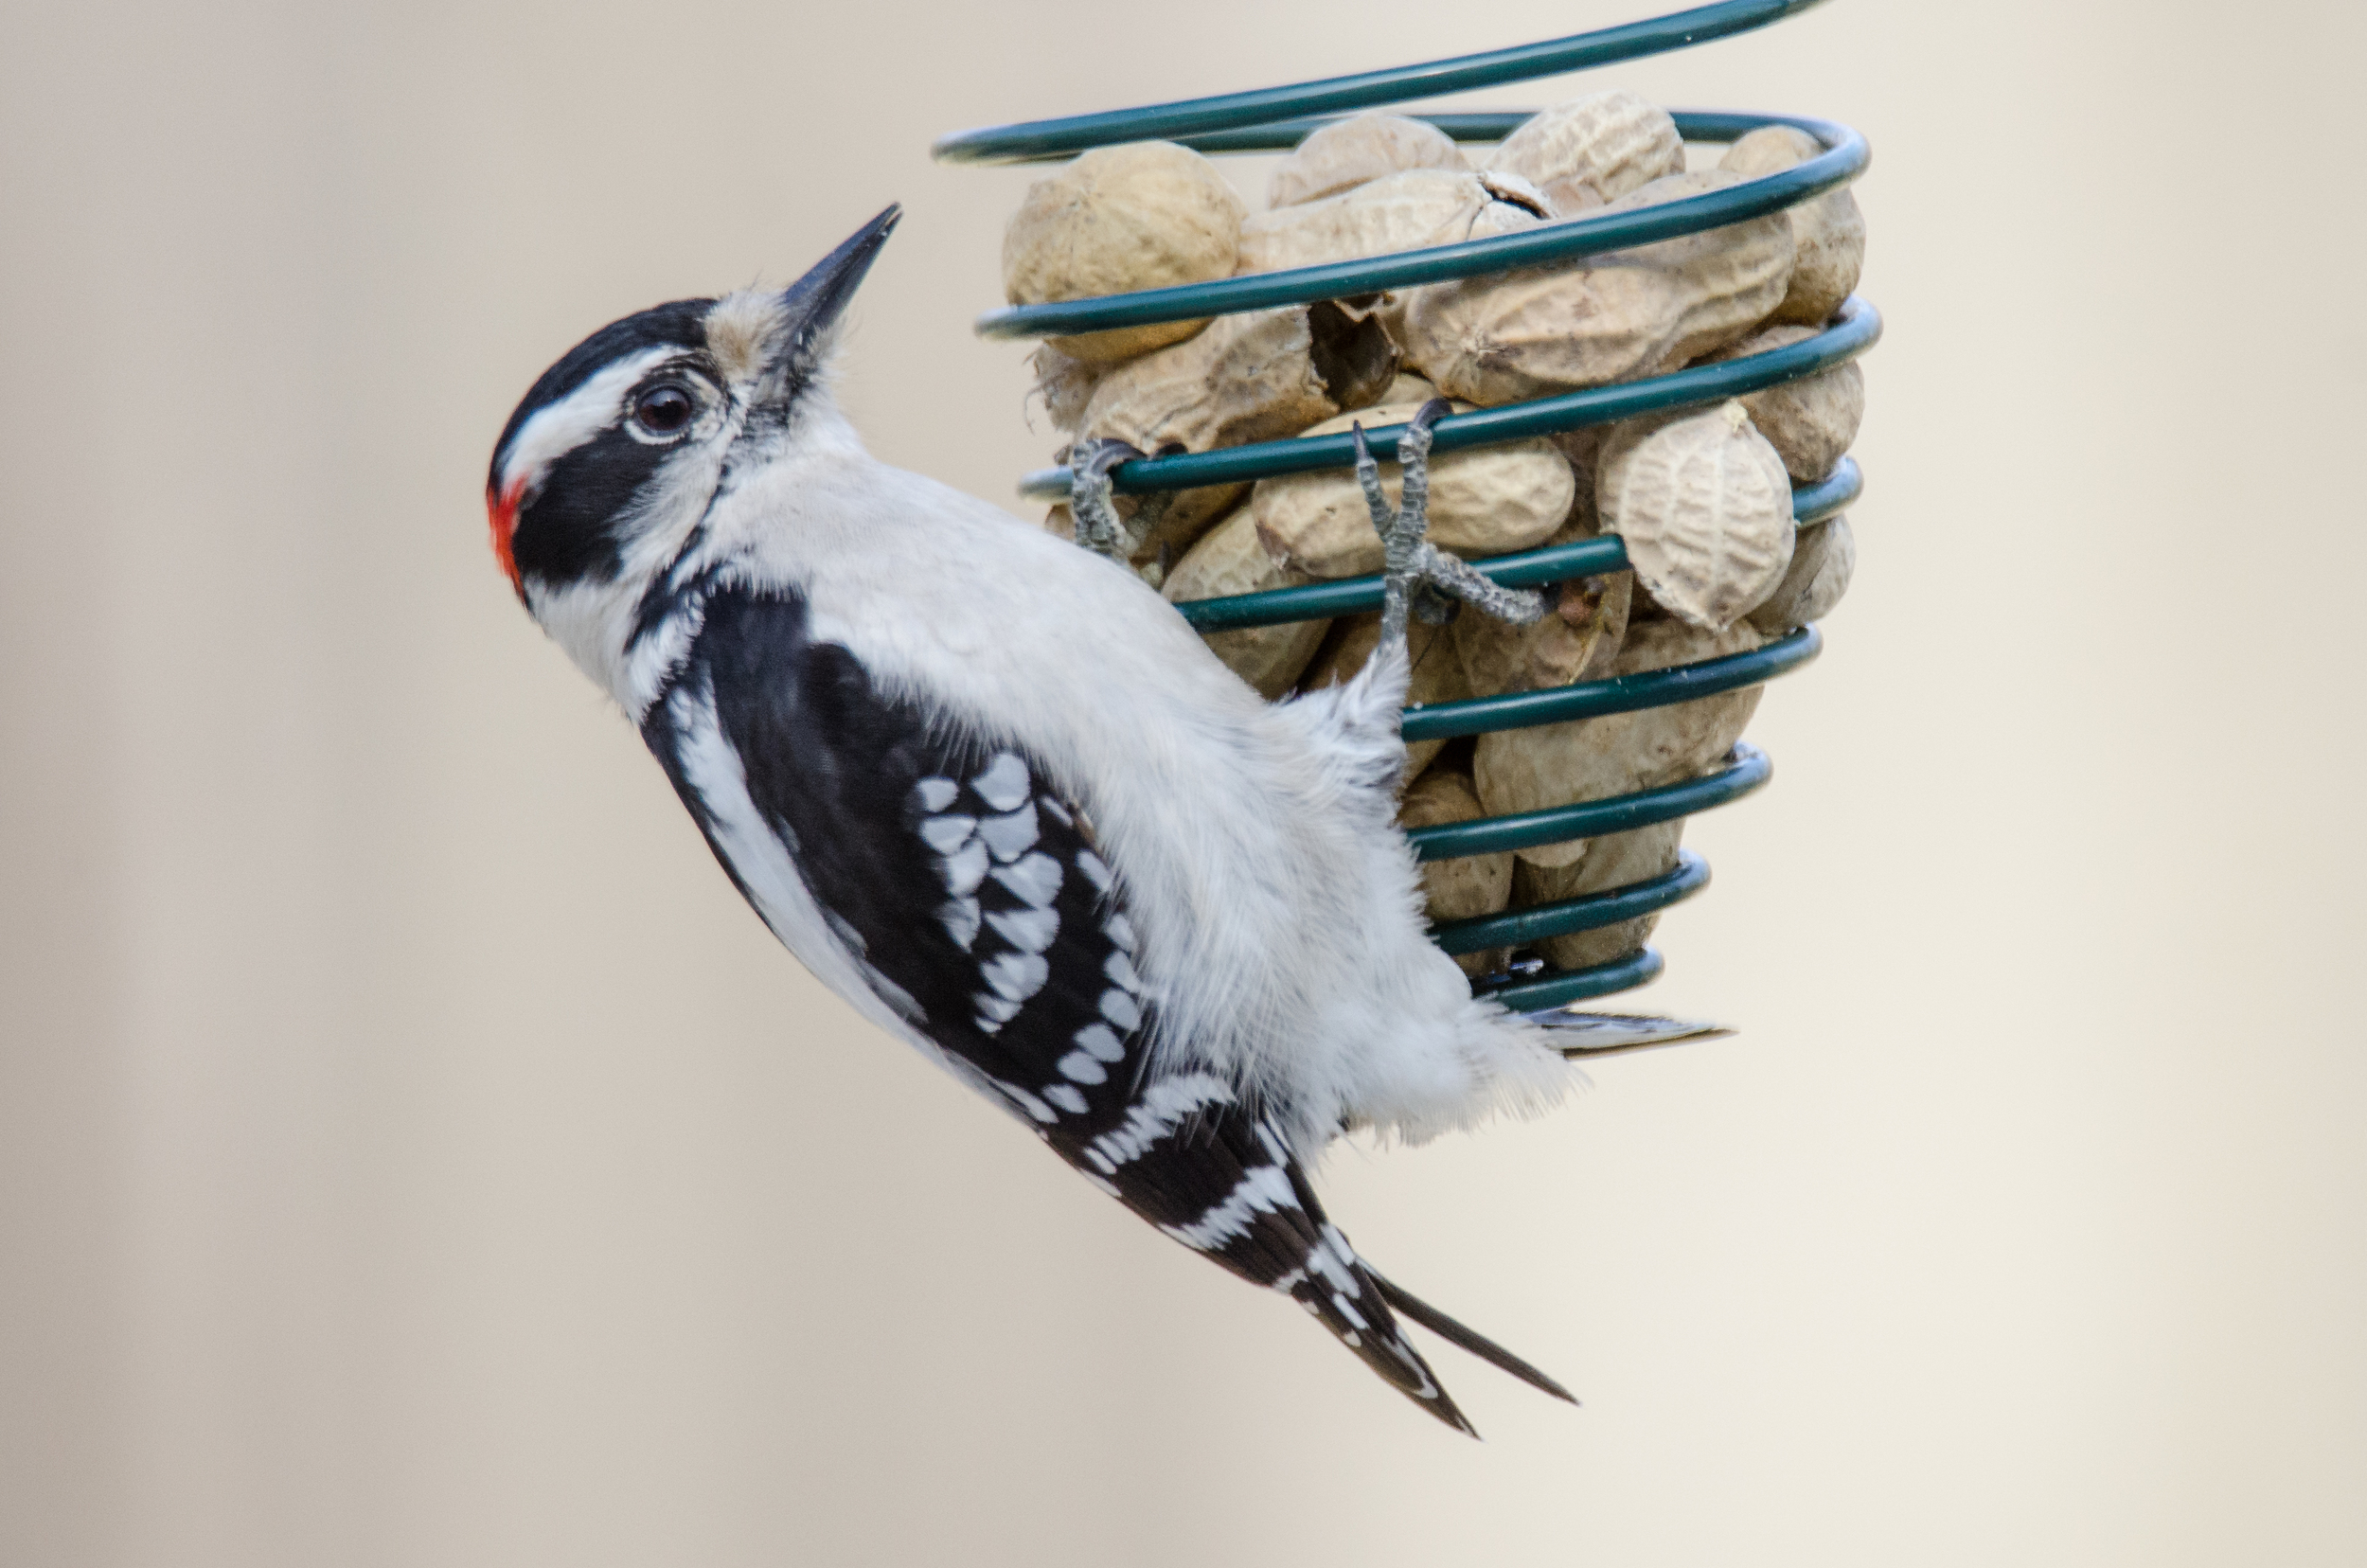 Downy Woodpecker  Nikon D7000 ISO 800 600mm f/6.3 1/800 sec with flash